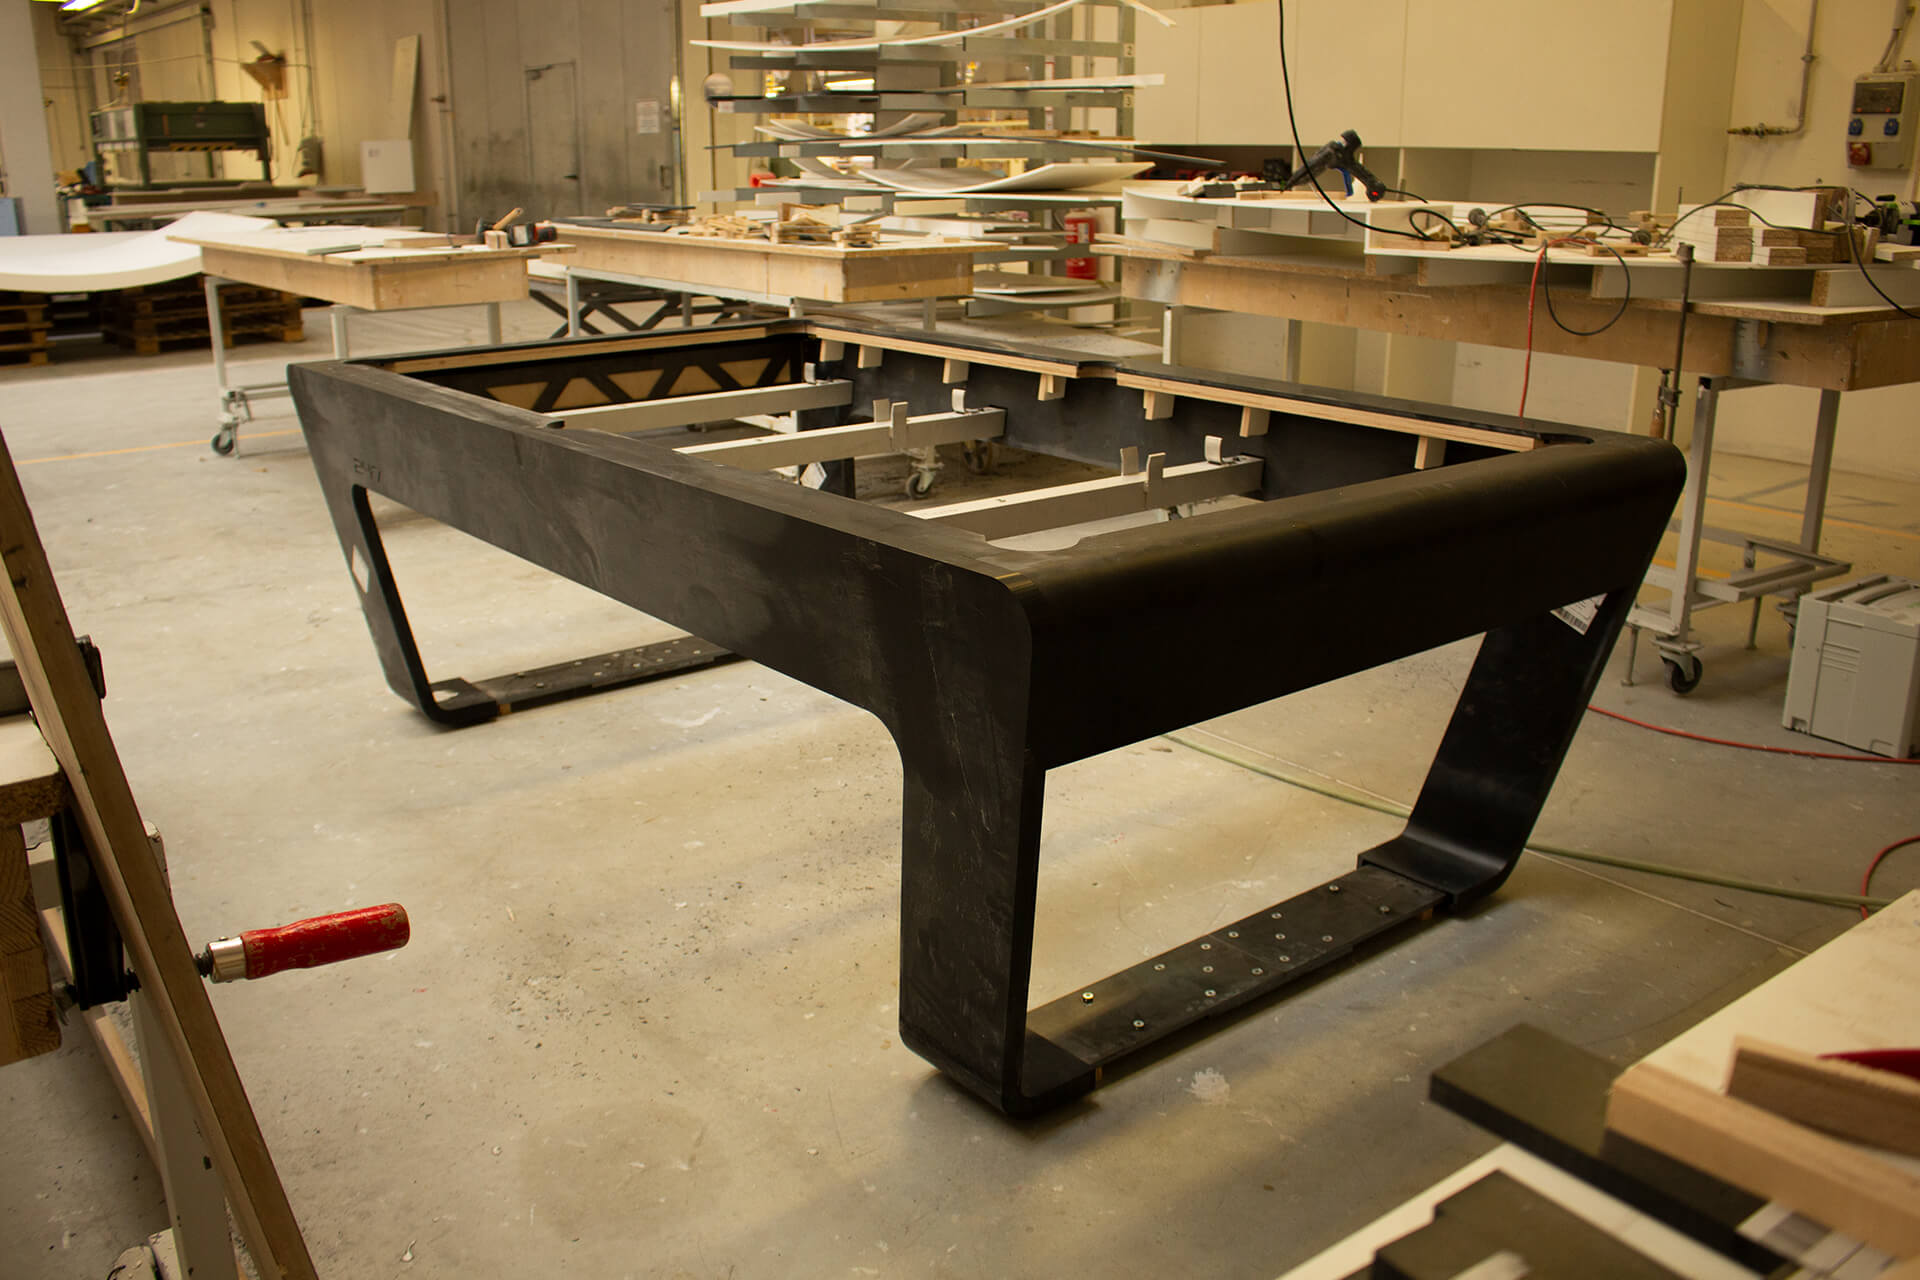 Production of Design Pool Table with Corian Surface